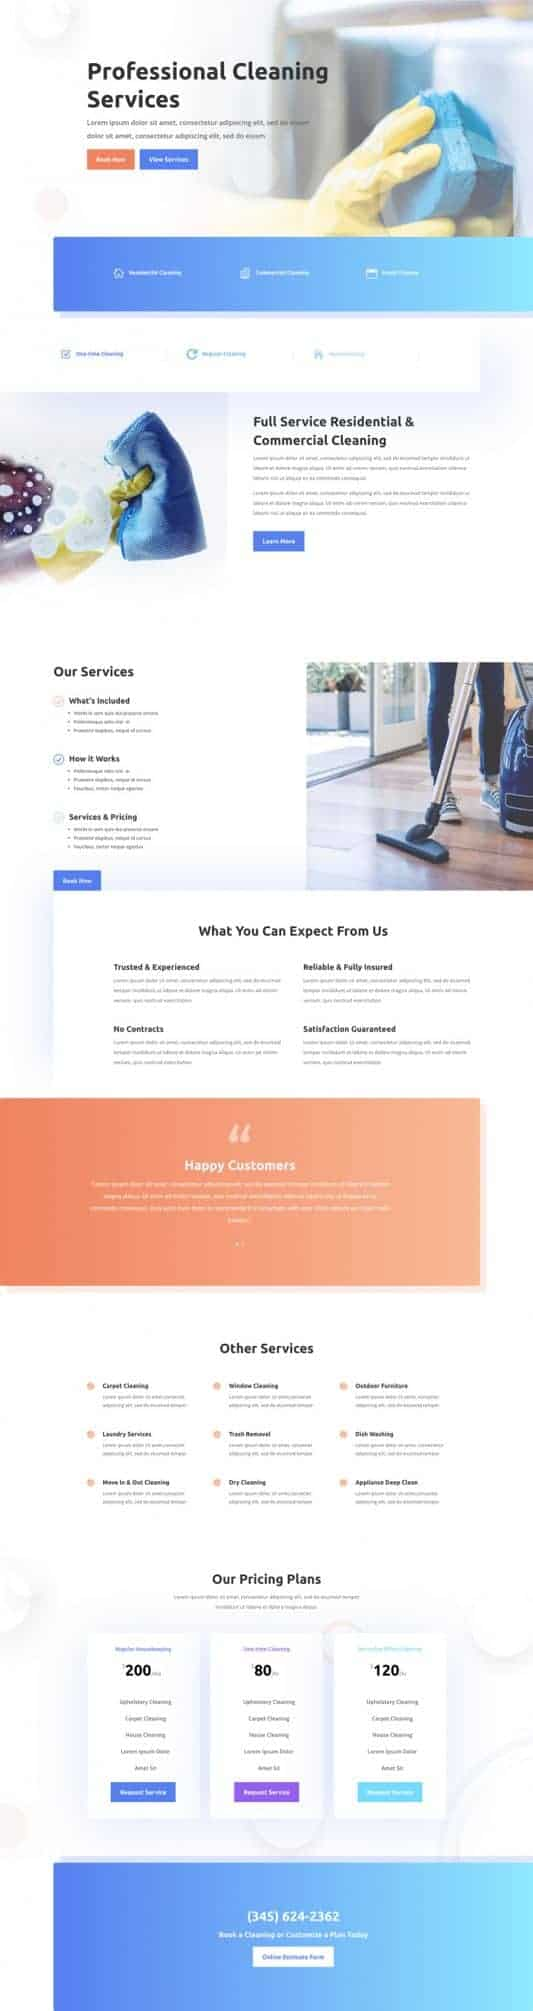 The Cleaning Company Page Style: Homepage Design 1